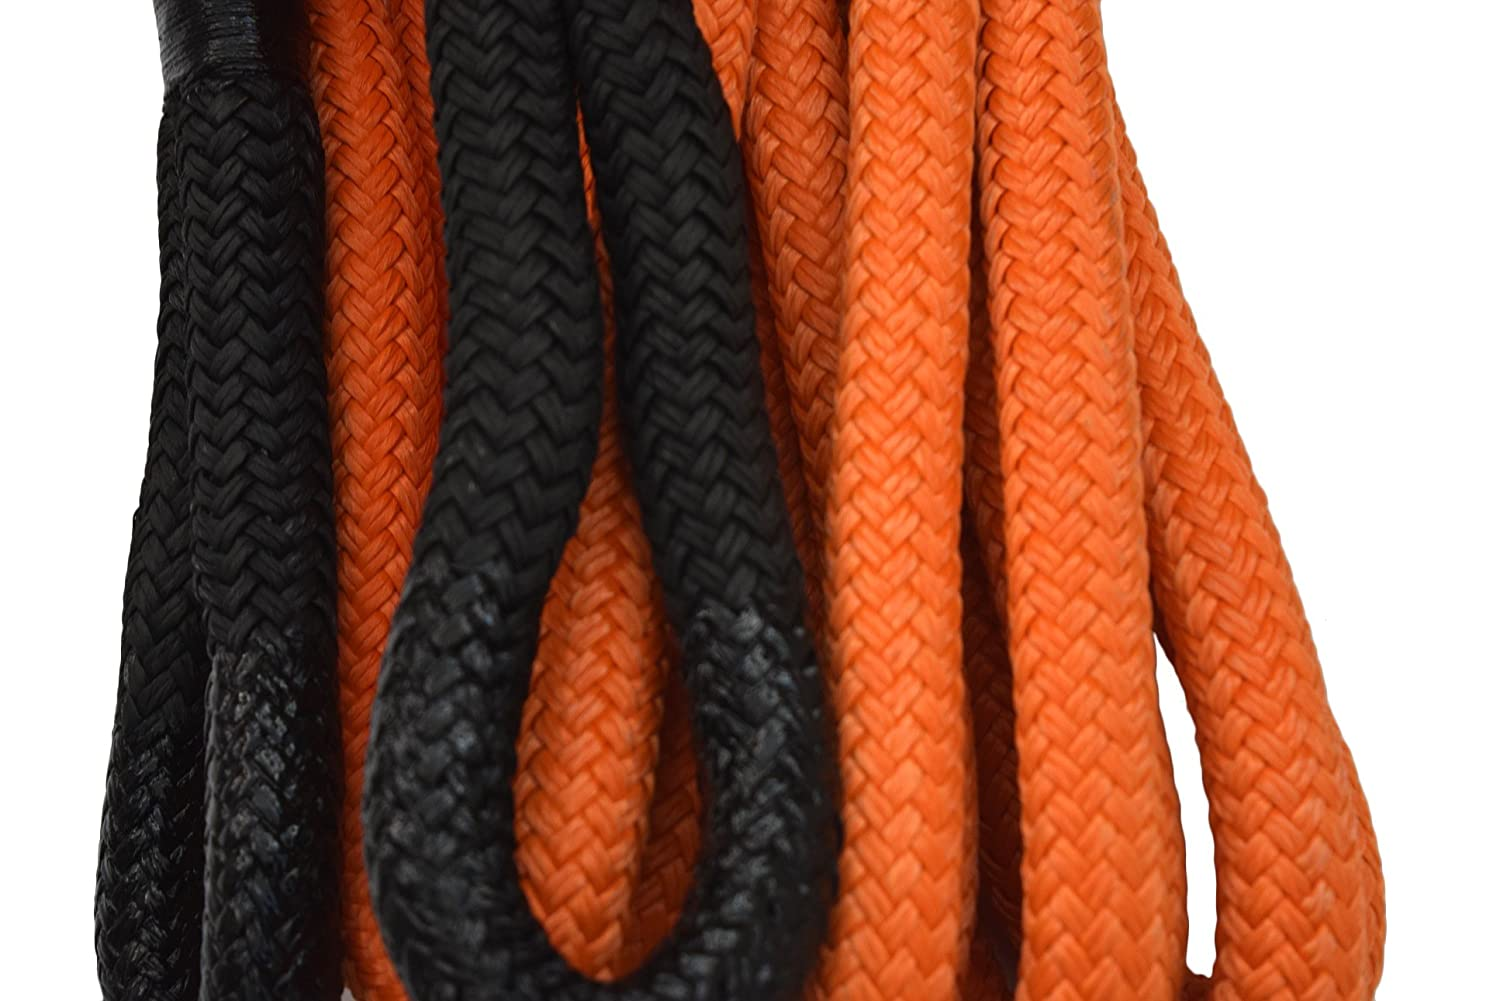 1 Dia Kinetic Energy Rope,Recovery Rope,Kinetic Rope Heavy Duty Vehicle Tow Strap Rope for Truck ATV UTV SUV 1/×20ft, Orange